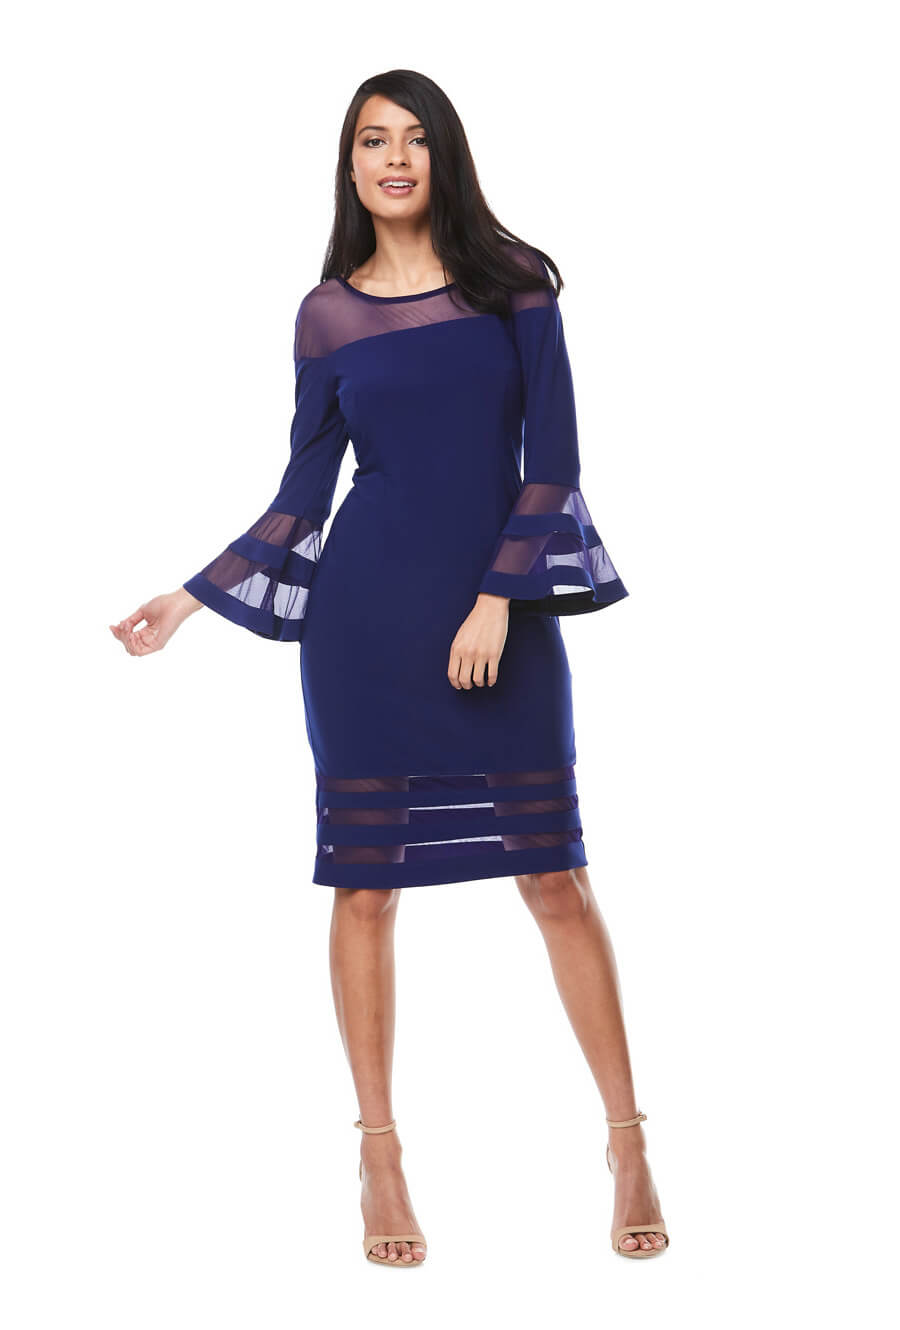 Short stretch jersey cocktail dress with long bell sleeves & sheer panel detail